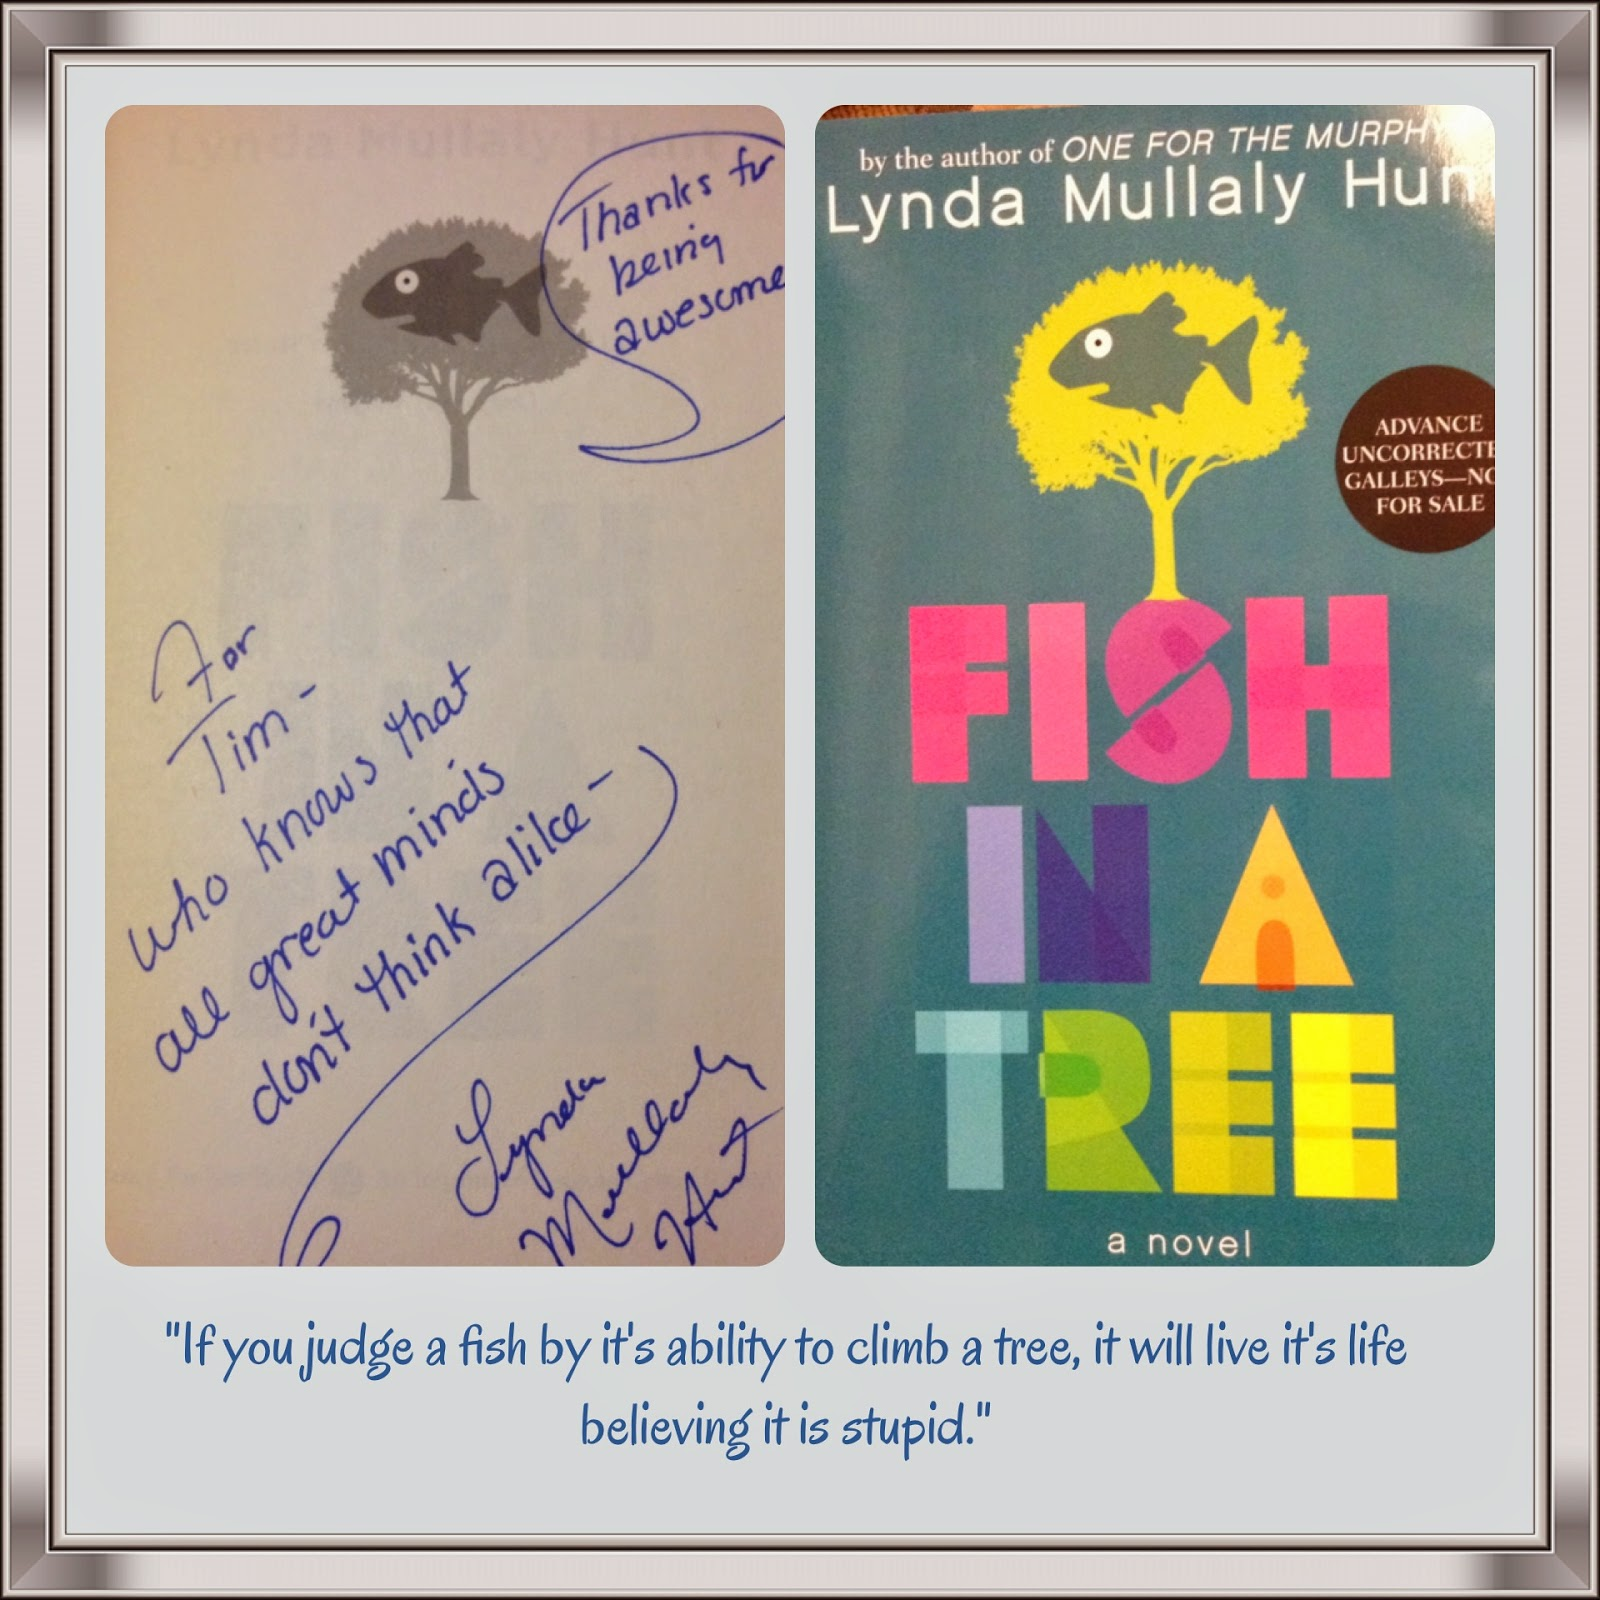 Mr o 39 neill 39 s literary life july 2014 for Fish in a tree by lynda mullaly hunt